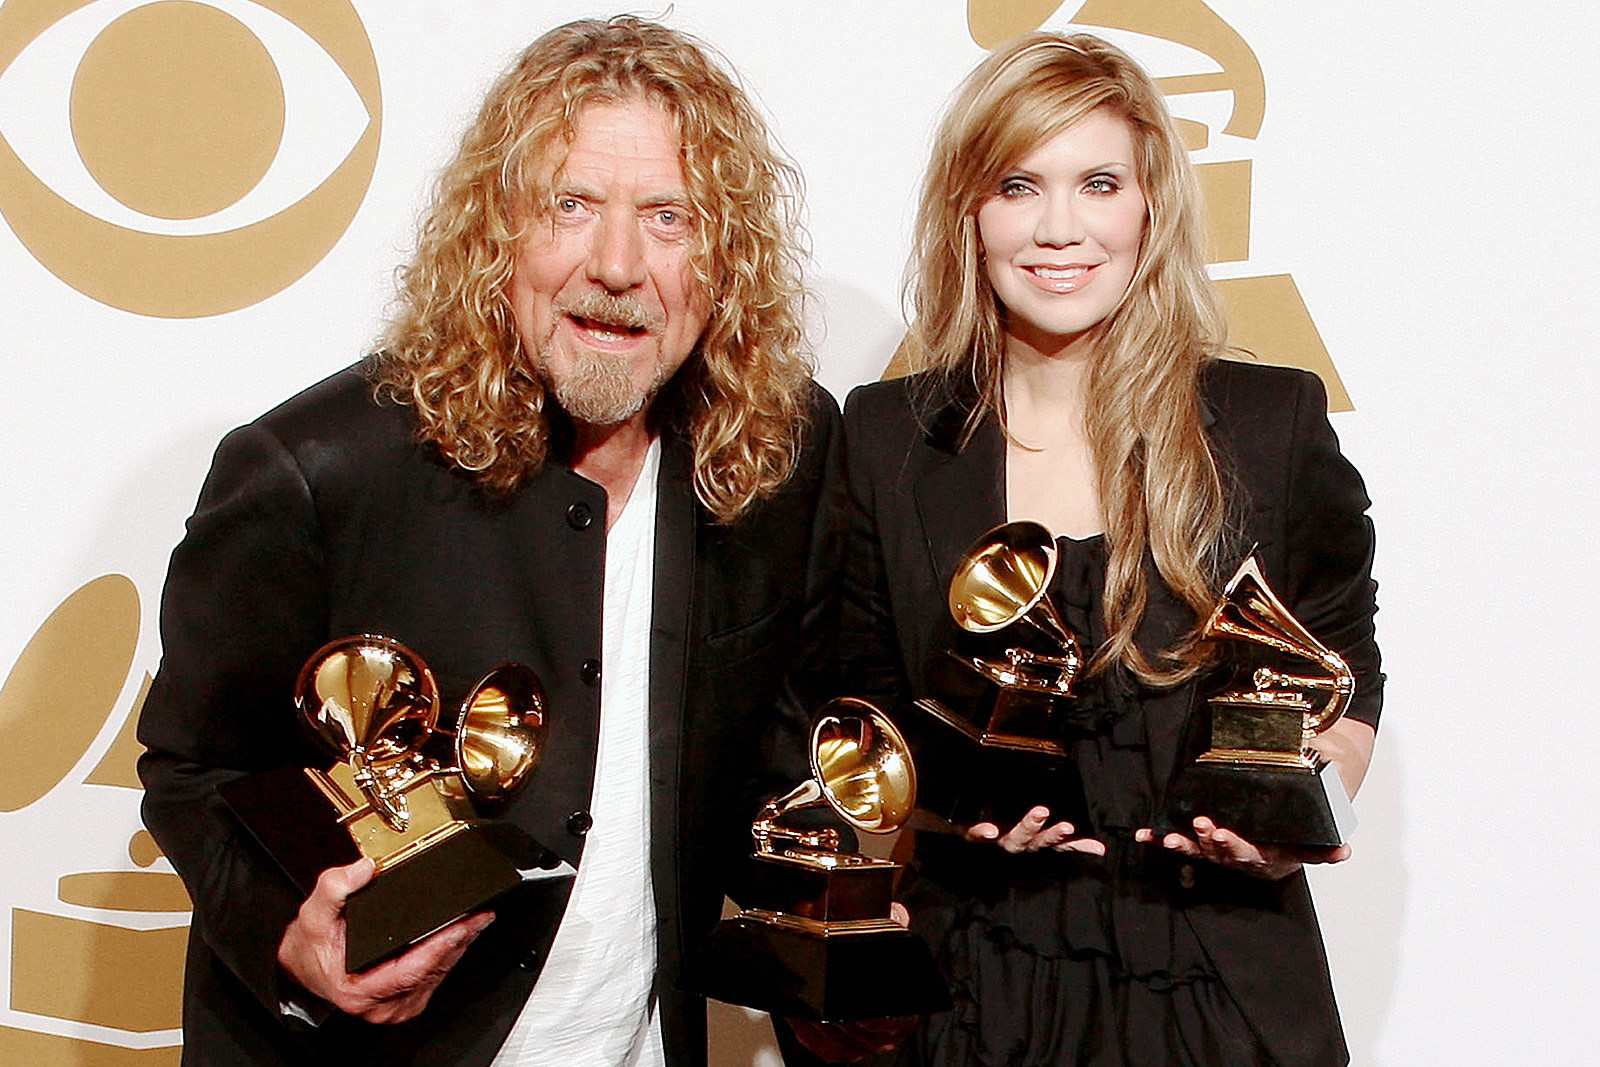 Robert Plant and Alison Krauss Connect Over What They Don't Know